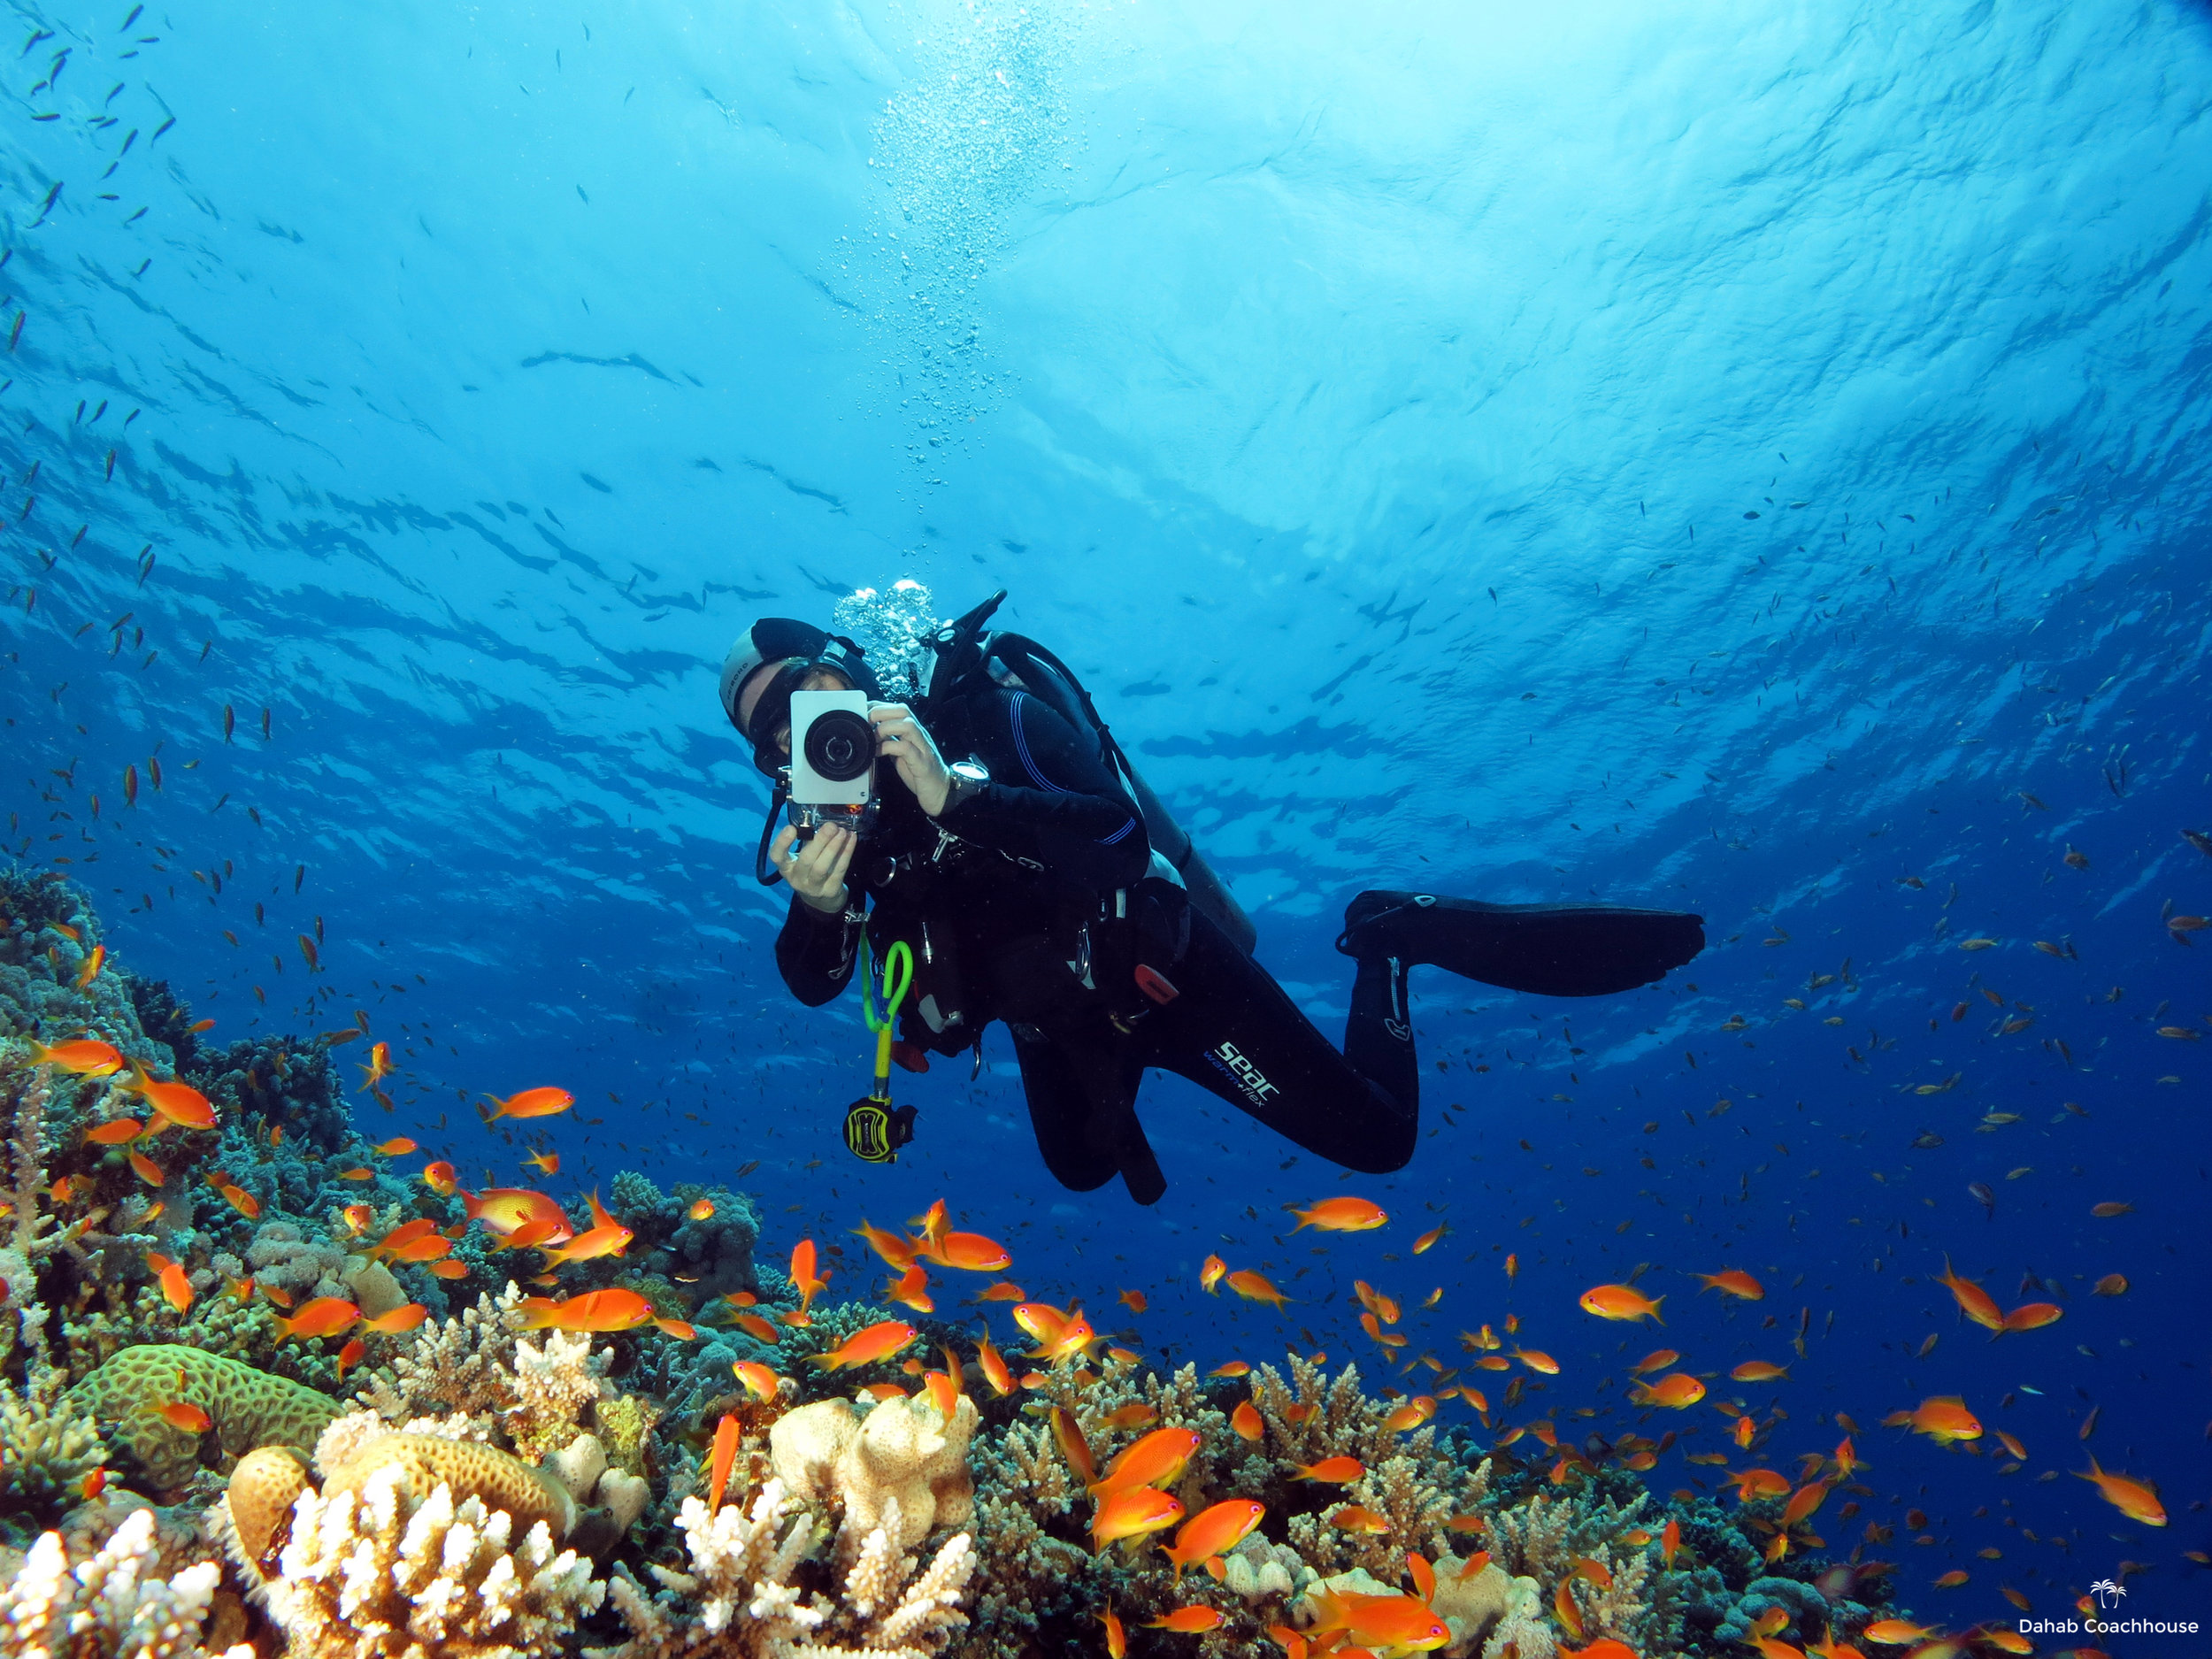 Dahab_Coachhouse_Egypt_Red_Sea_Diving_Beach_Accommodation_Holiday_Travel_Diver_Anthias.JPG